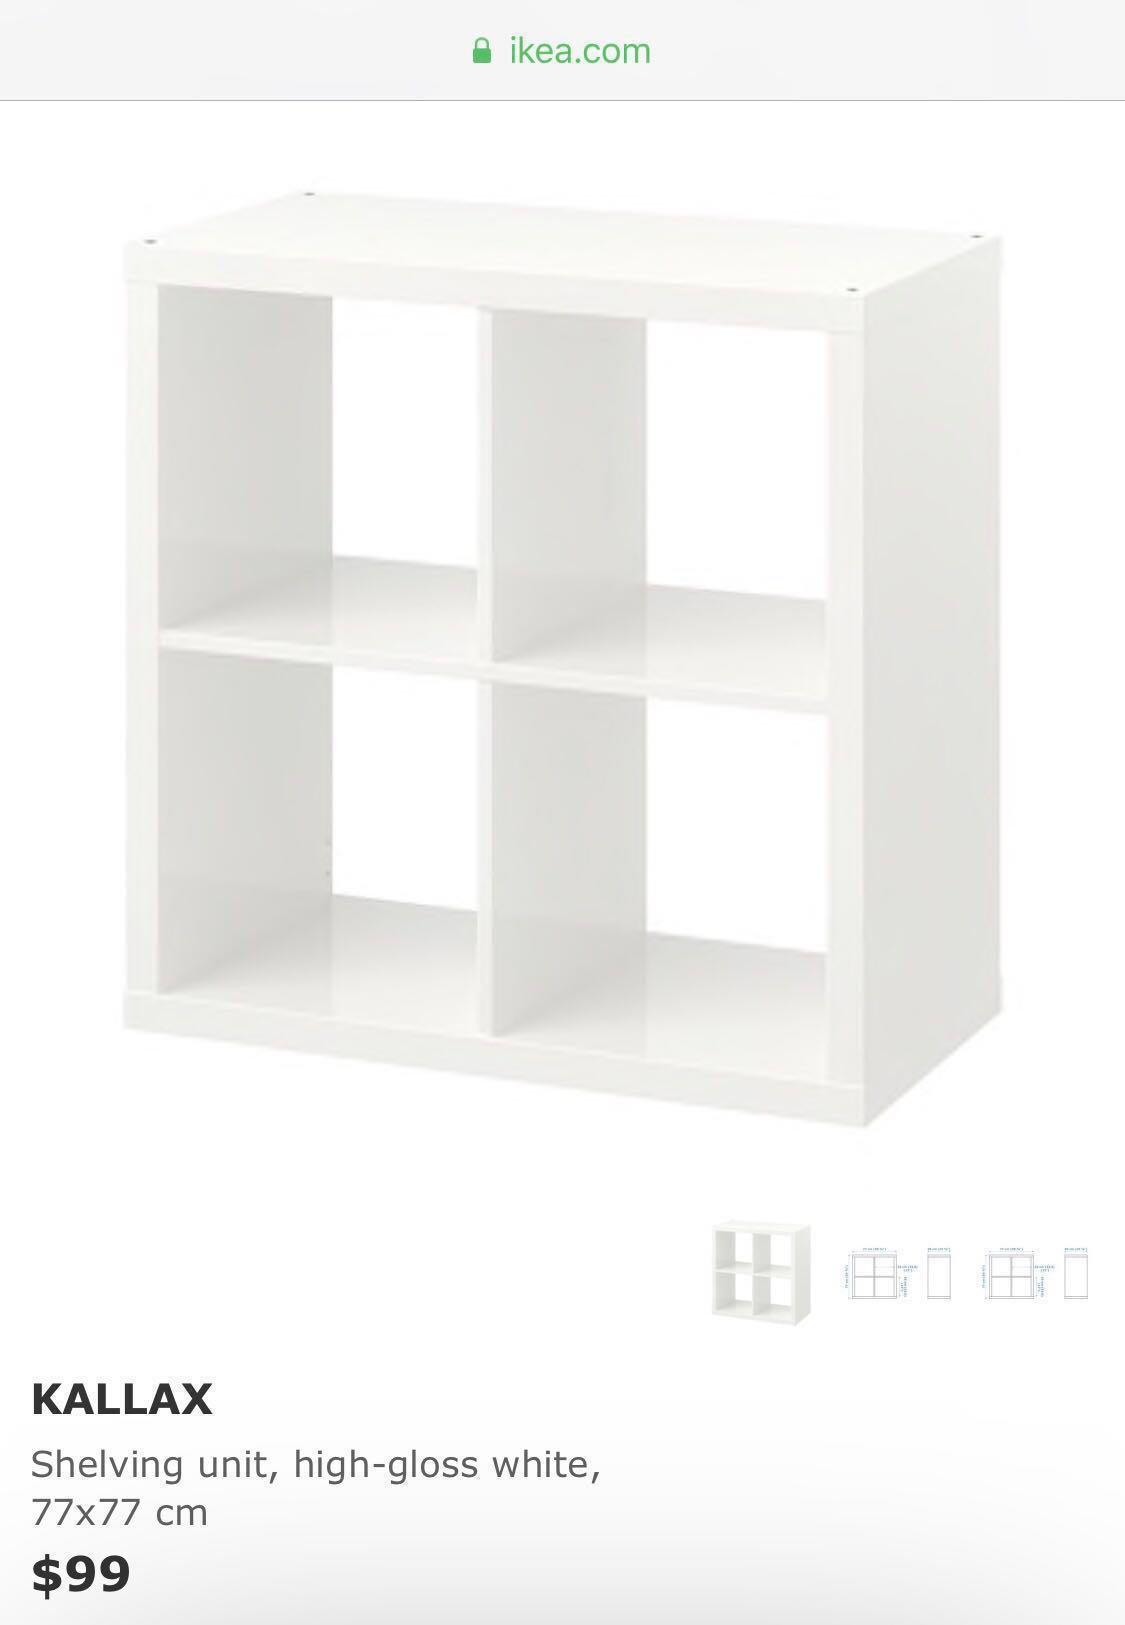 100% authentic 4d7bf bdde5 Free Delivery BN Ikea KALLAX Shelving Unit, Furniture ...